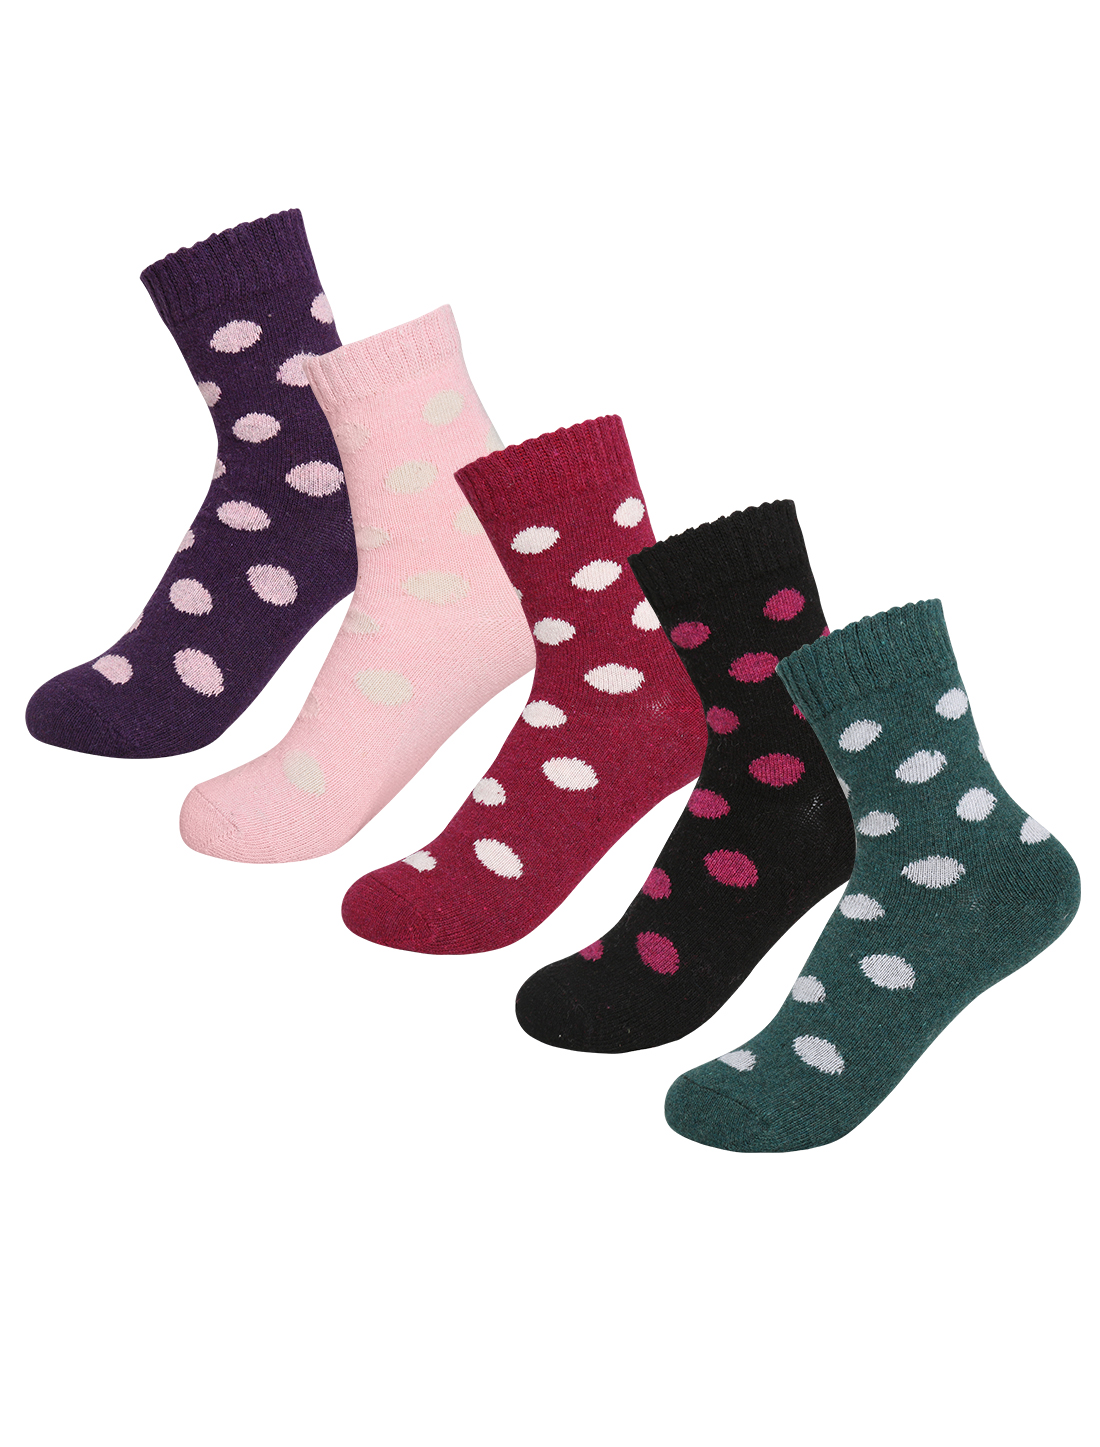 Women 5 Pack Dots Pattern Thermal Crew Socks 7-9 Assorted-Dots